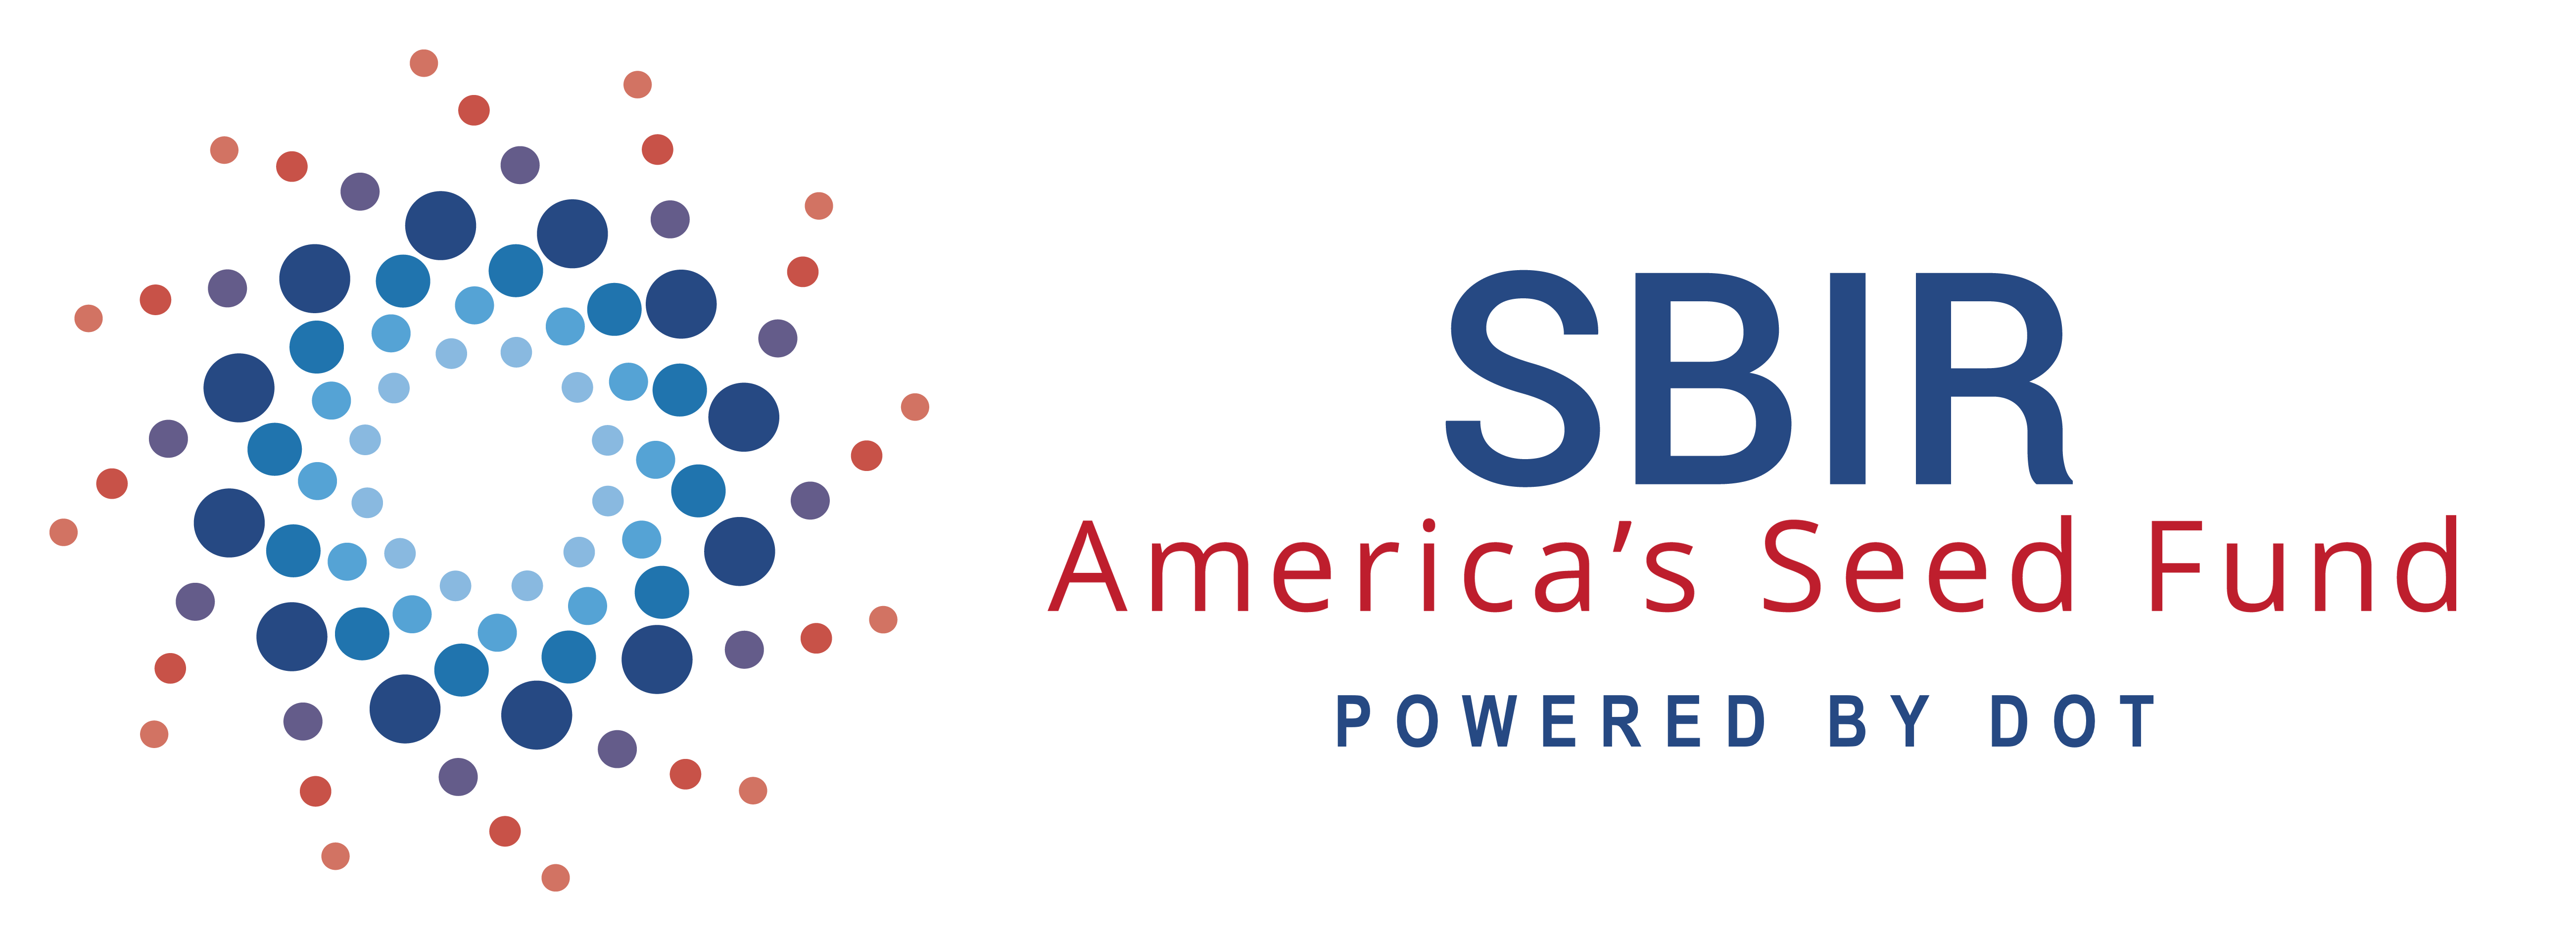 Small Business Innovation Research (SBIR) logo